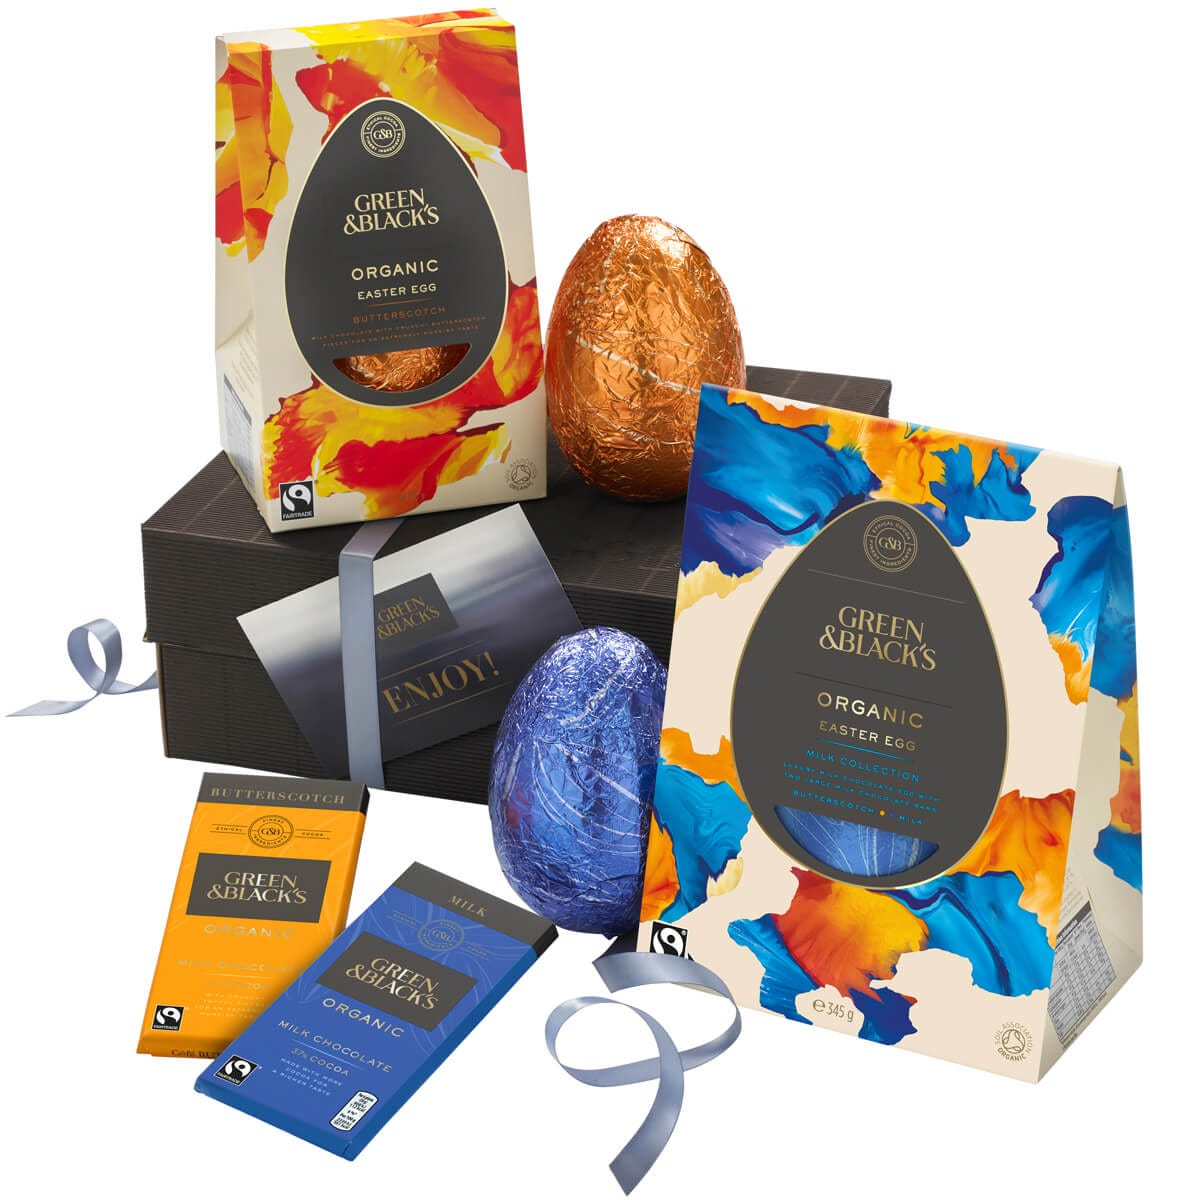 GB Organic Milk Easter Egg Collection Gift